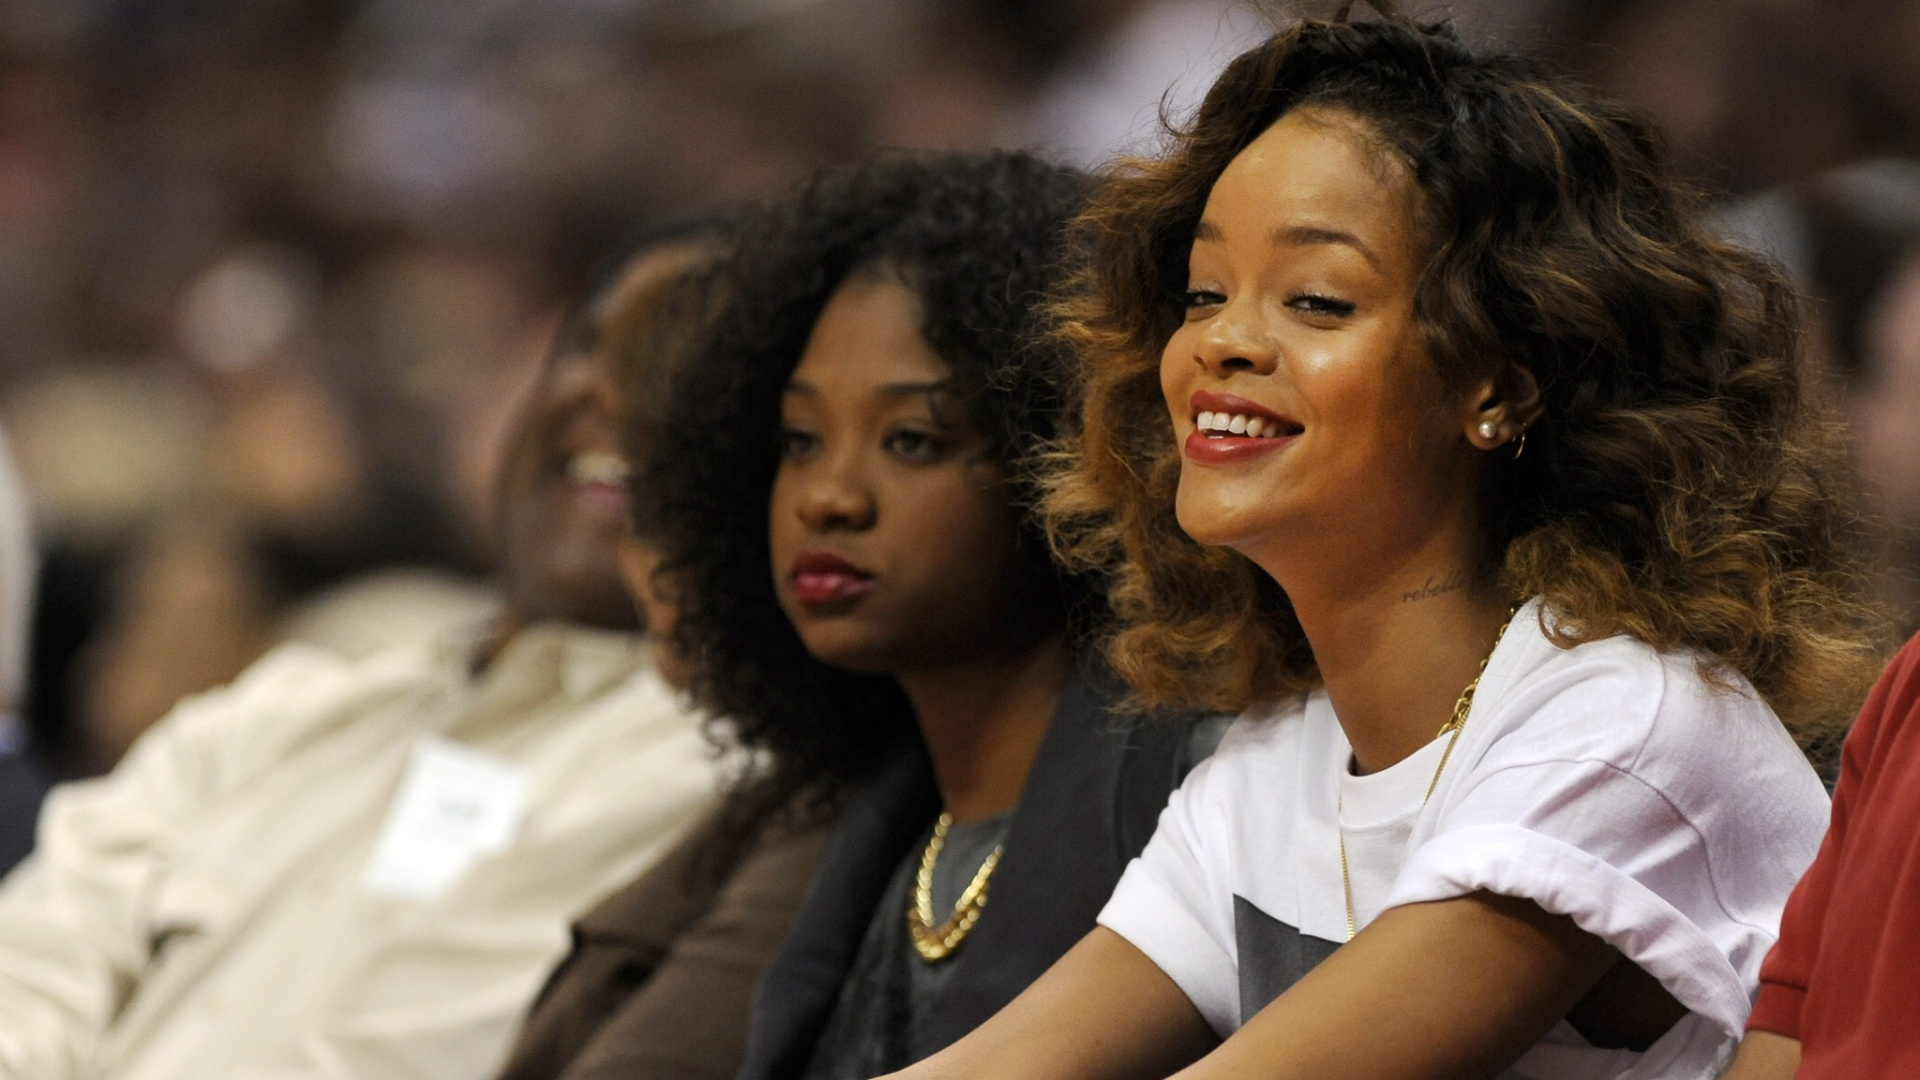 Rihanna sorri durante a partida entre Los Angeles Clippers e Memphis Grizzlies pela NBA